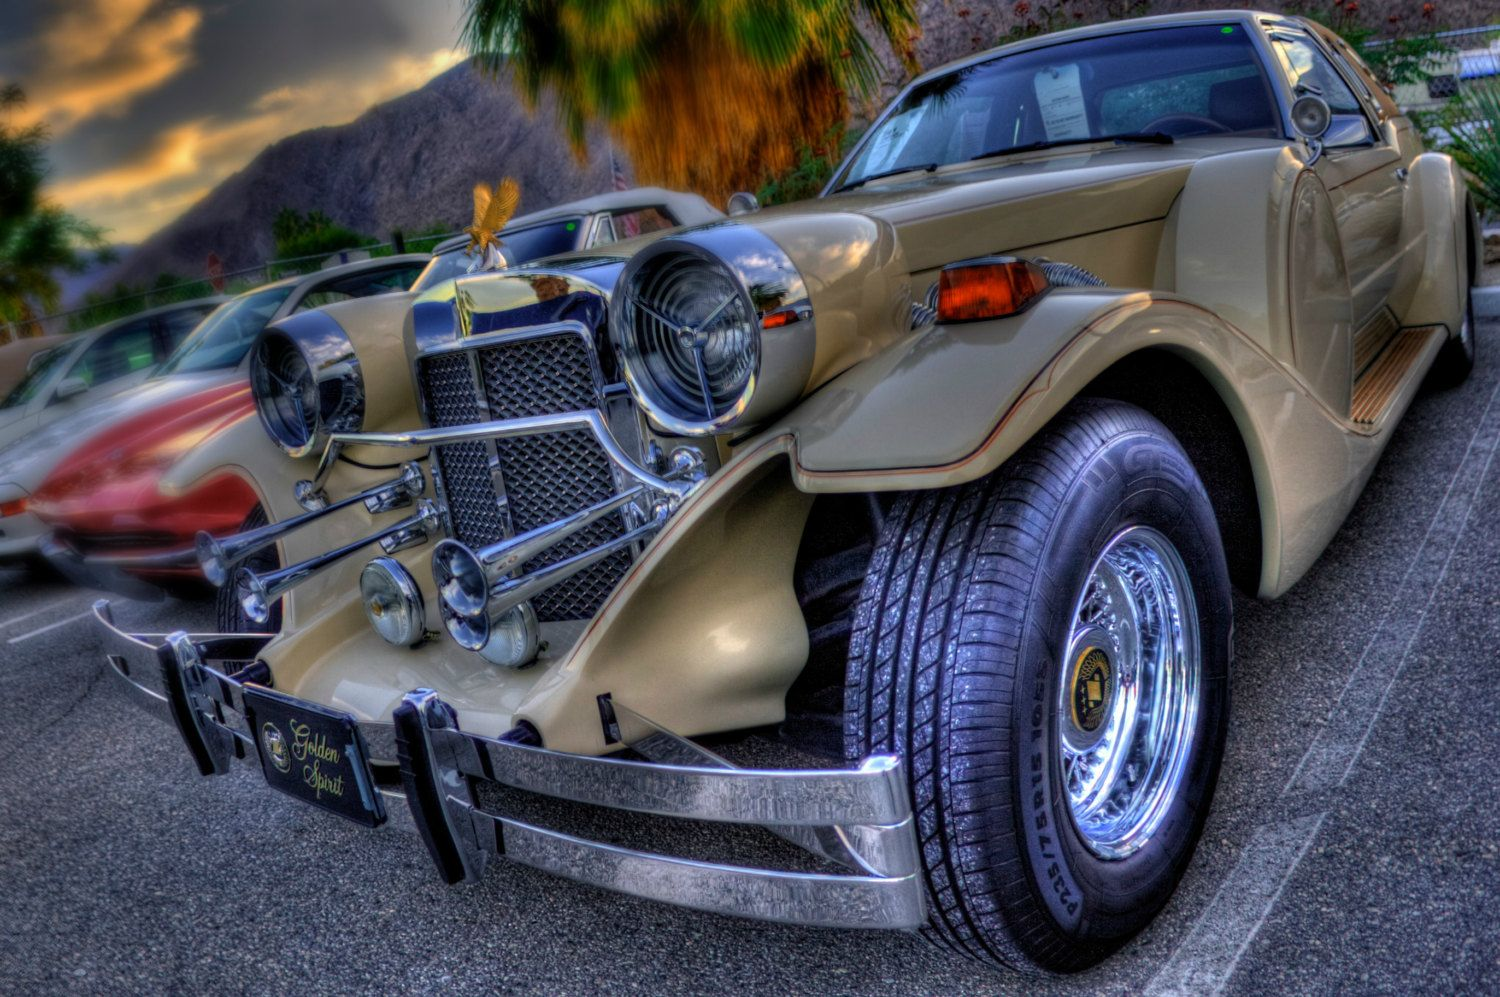 Zimmer Golden Spirit - Automobile Photography, Classic Cars ...